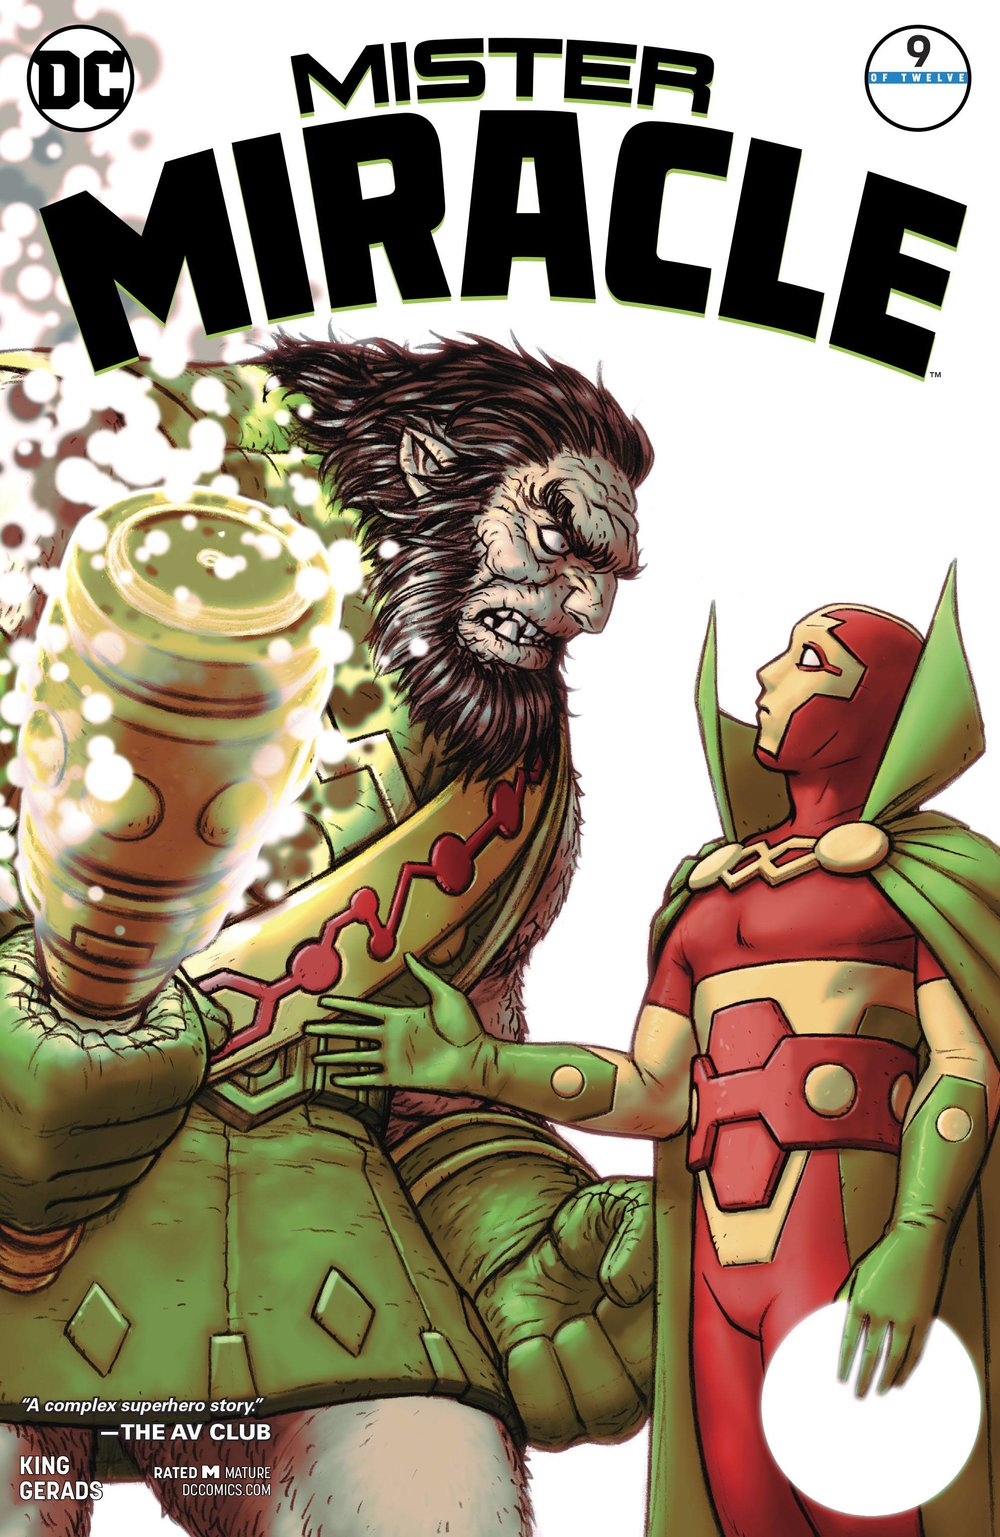 MISTER MIRACLE 9 of 12.jpg